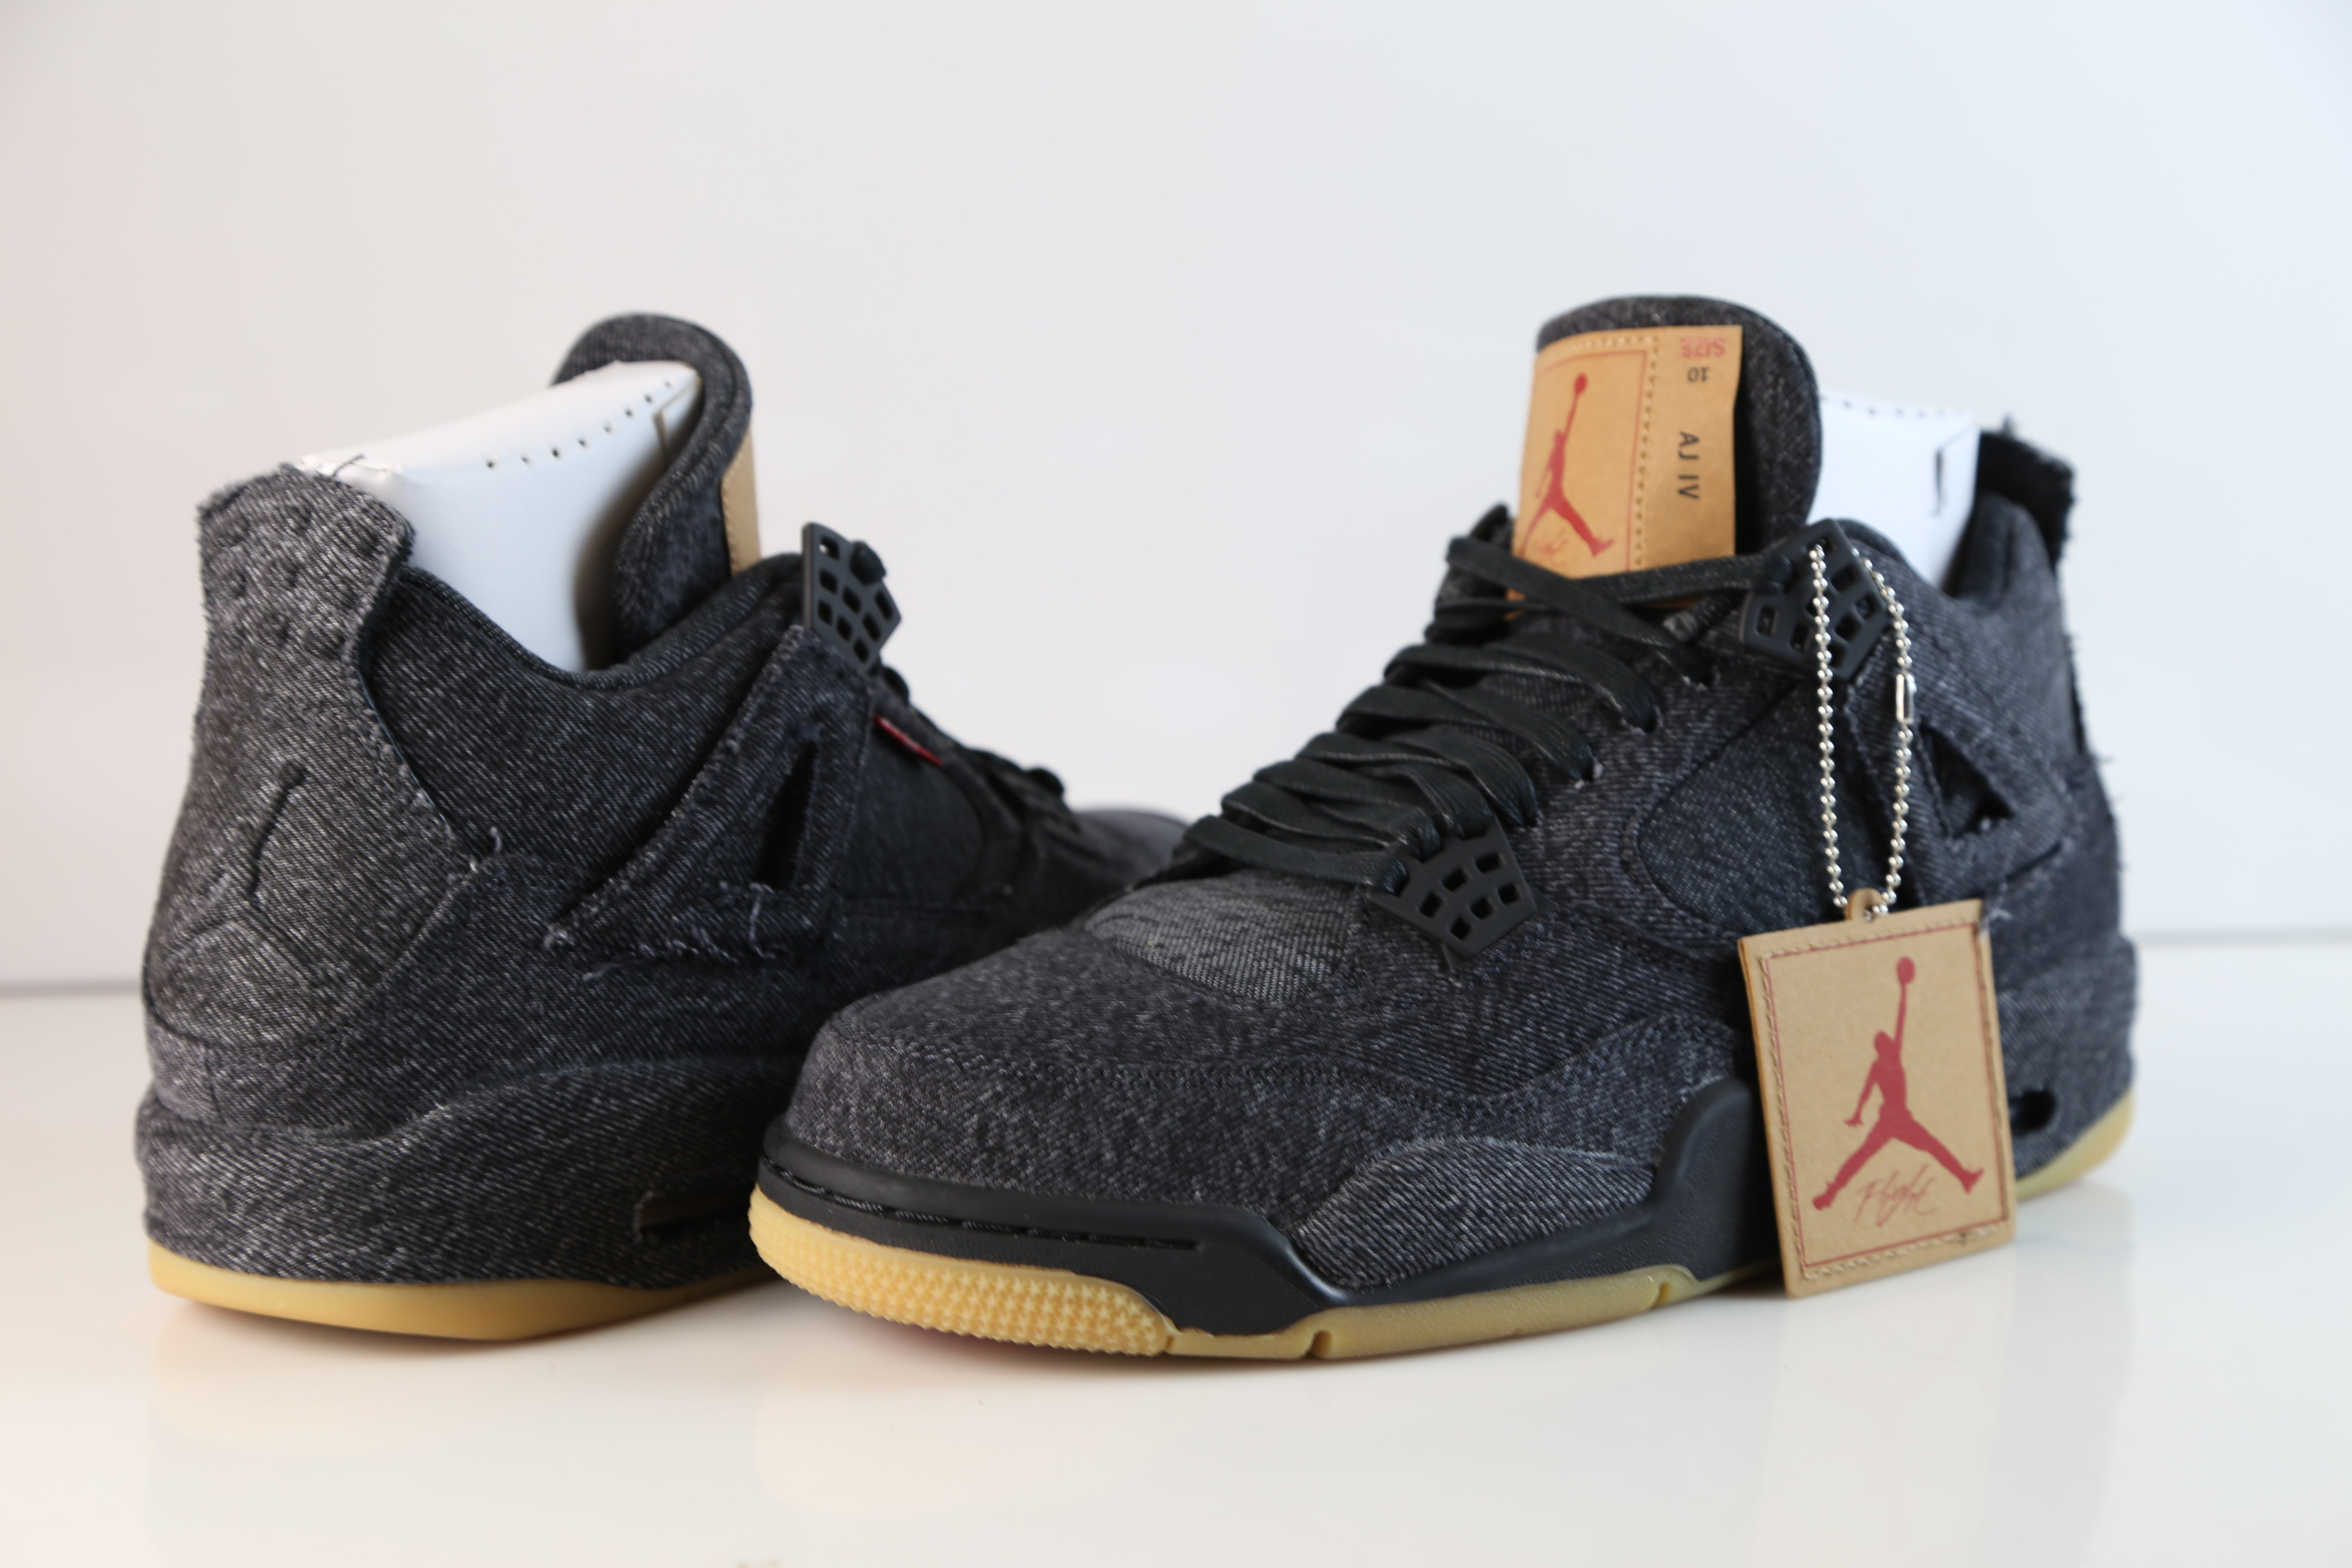 Nike Air Jordan X Levi s Retro 4 Black Denim AO2571-001 2018 Adult.   325.00. Size 5c43afb87